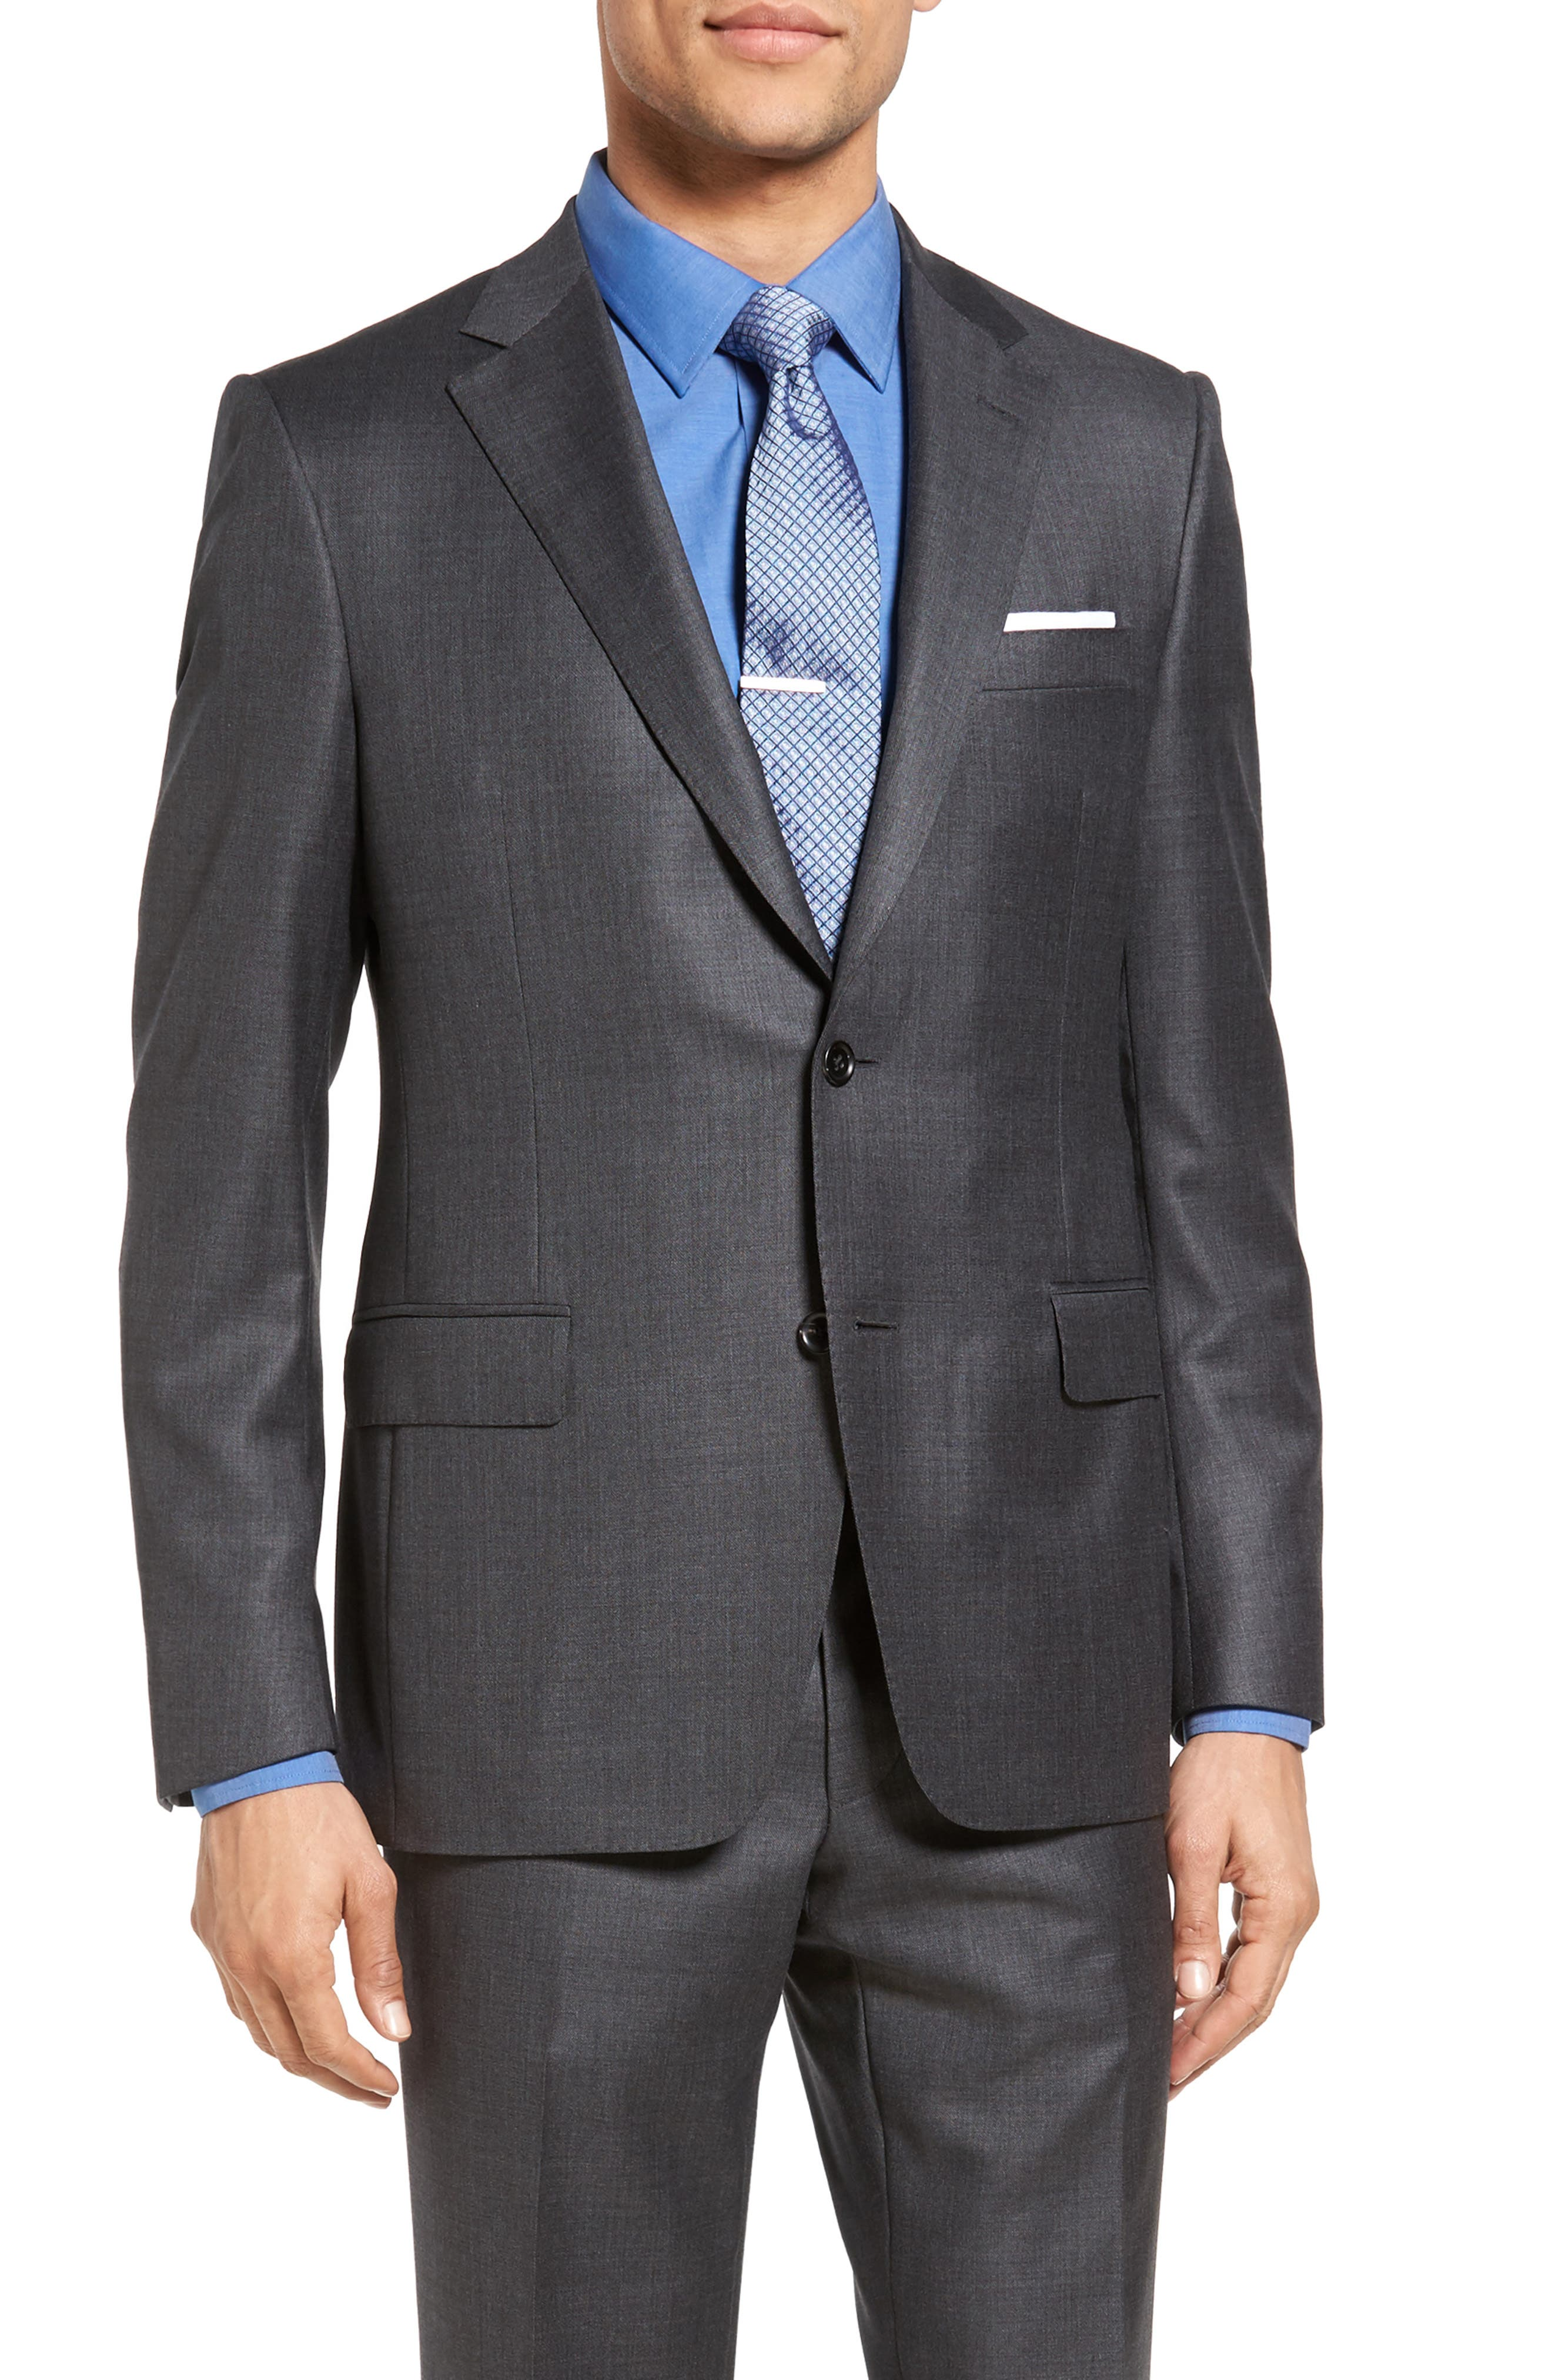 Beckett Classic Fit Sharkskin Wool Suit,                             Main thumbnail 1, color,                             Charcoal